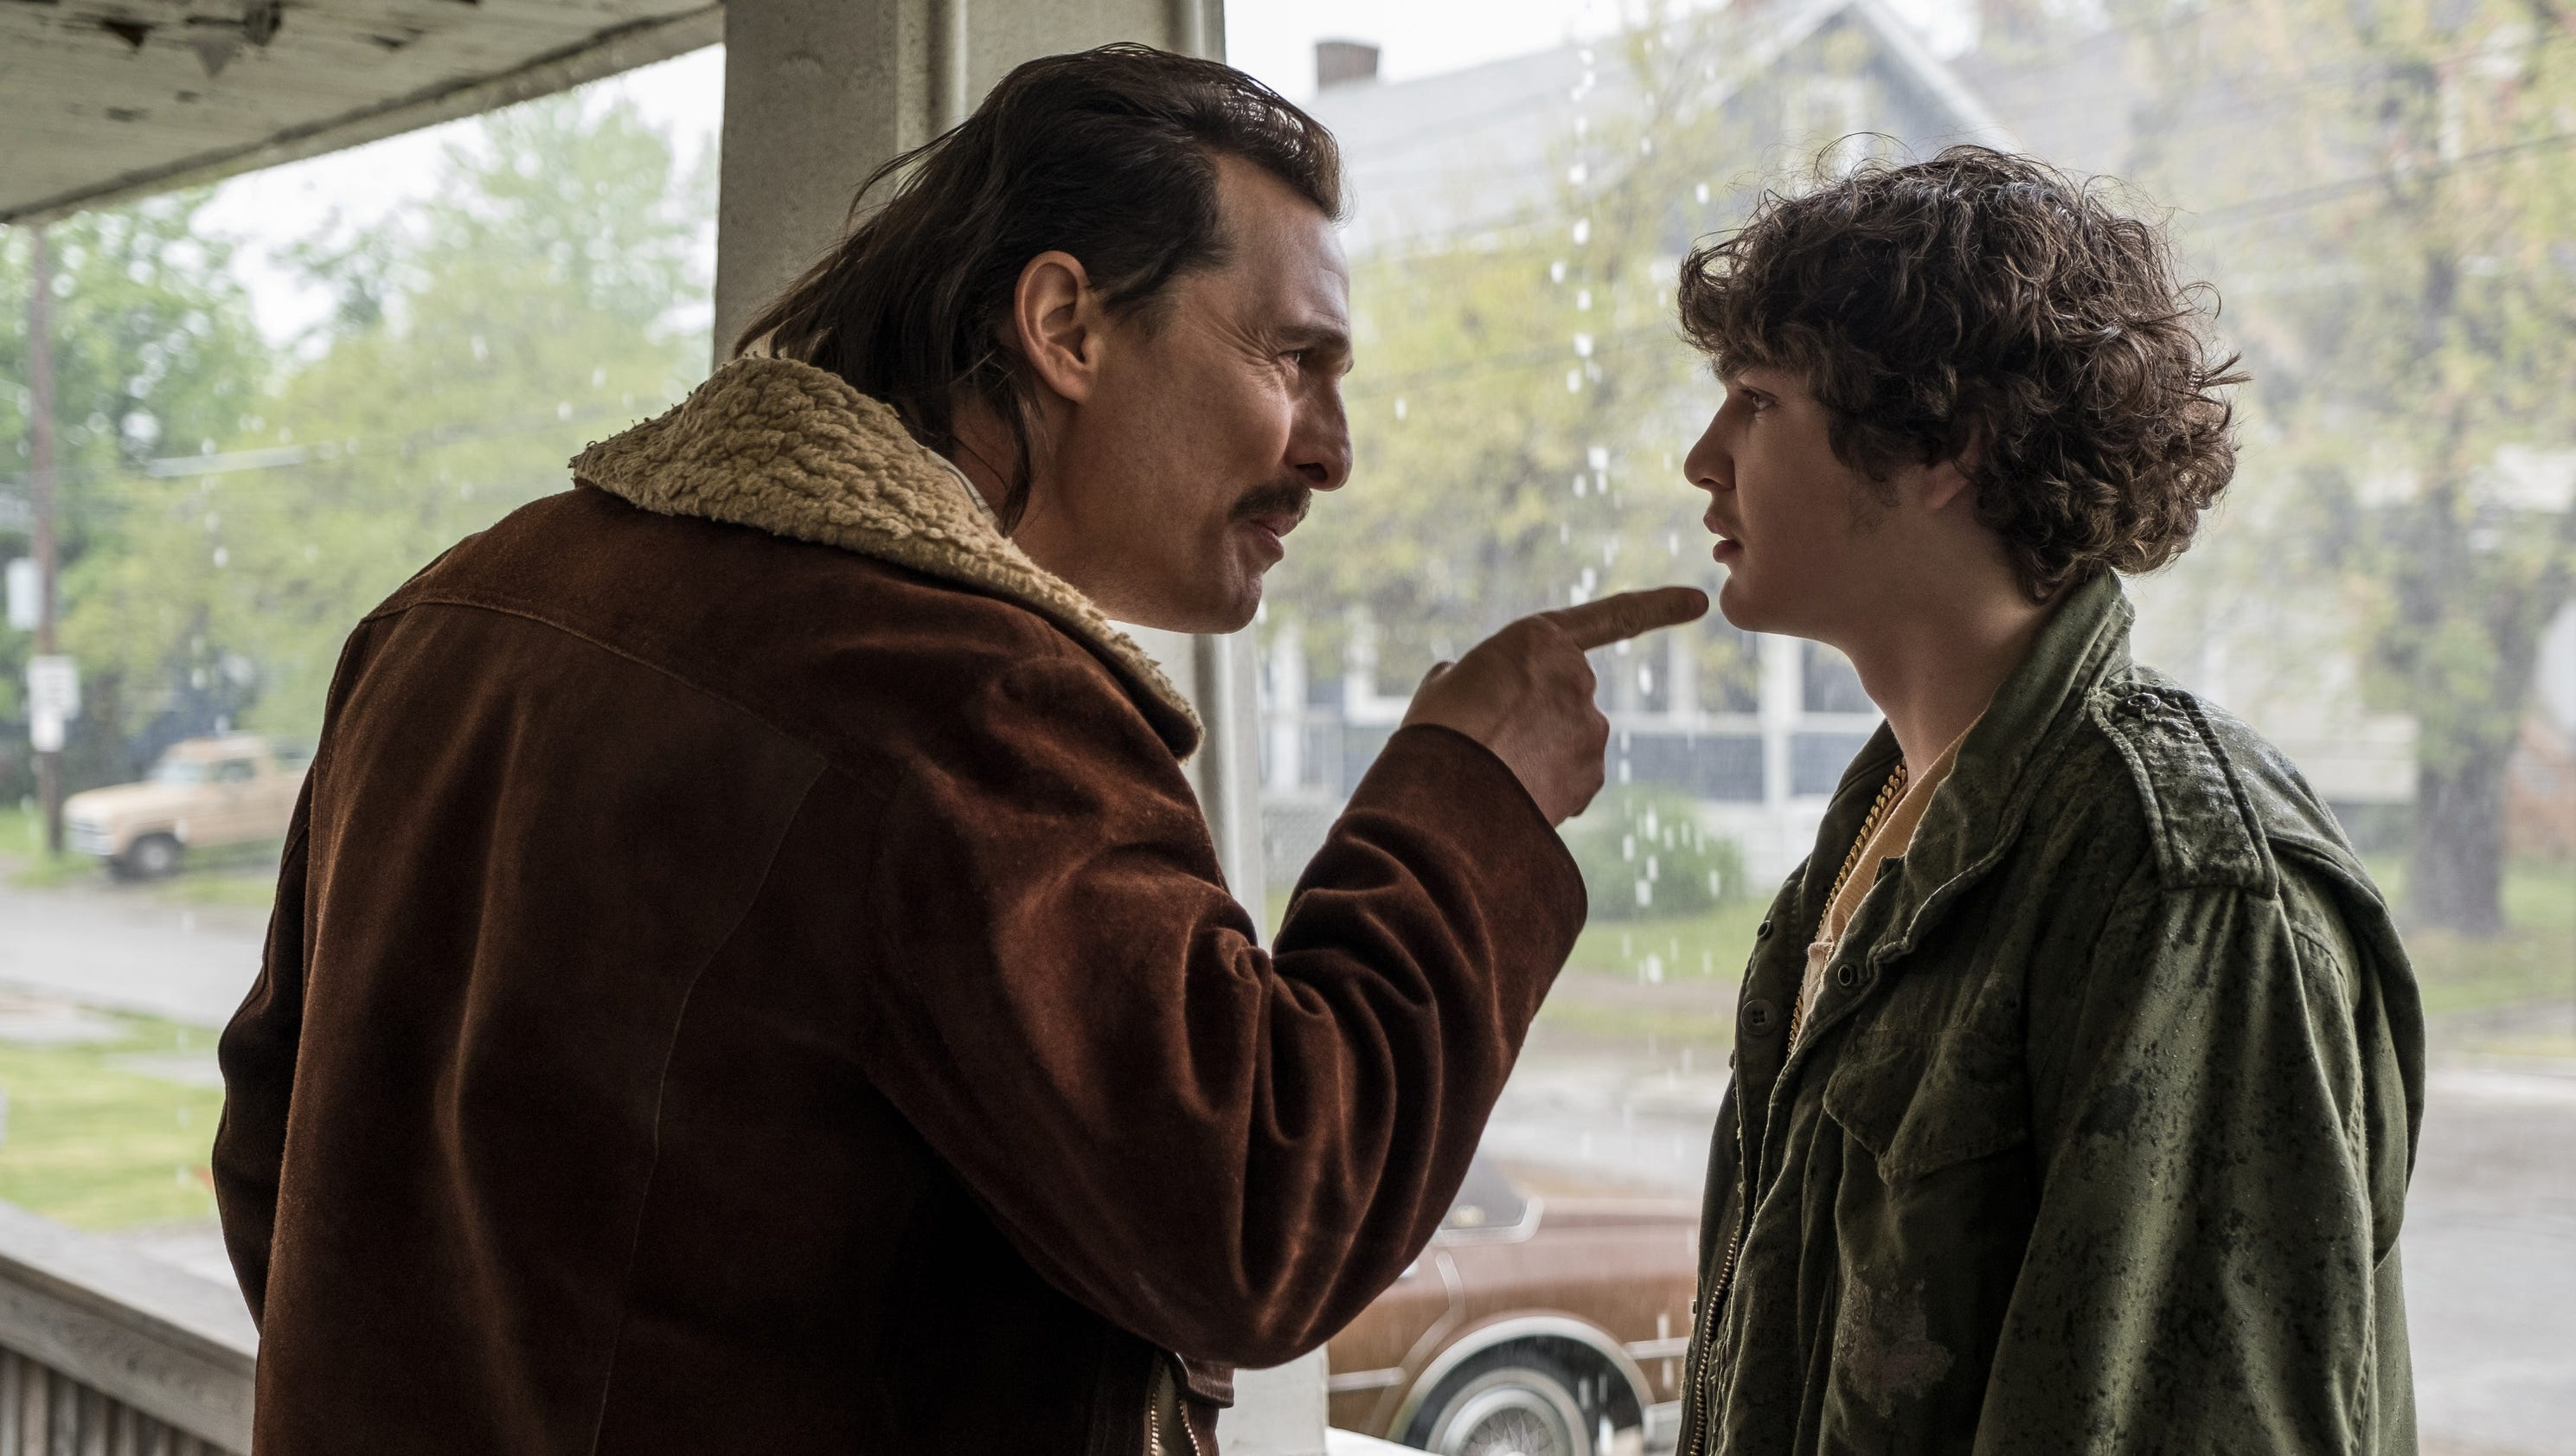 Matthew McConaughey stars in White Boy Rick based on a true story Warning The trailer includes profanity and depicts a young teenager involved with